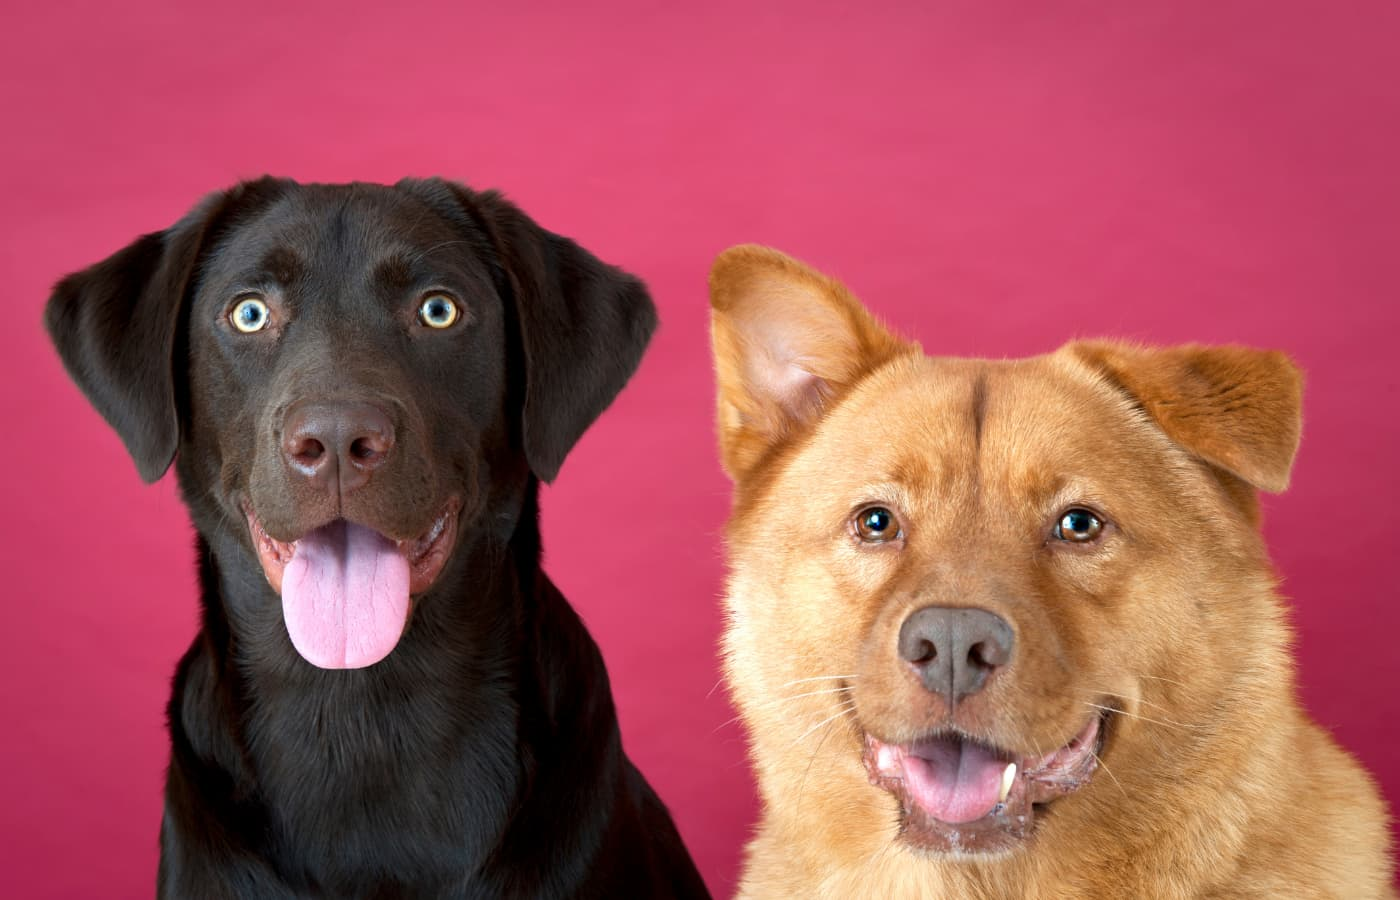 Cute and inspiring dogs